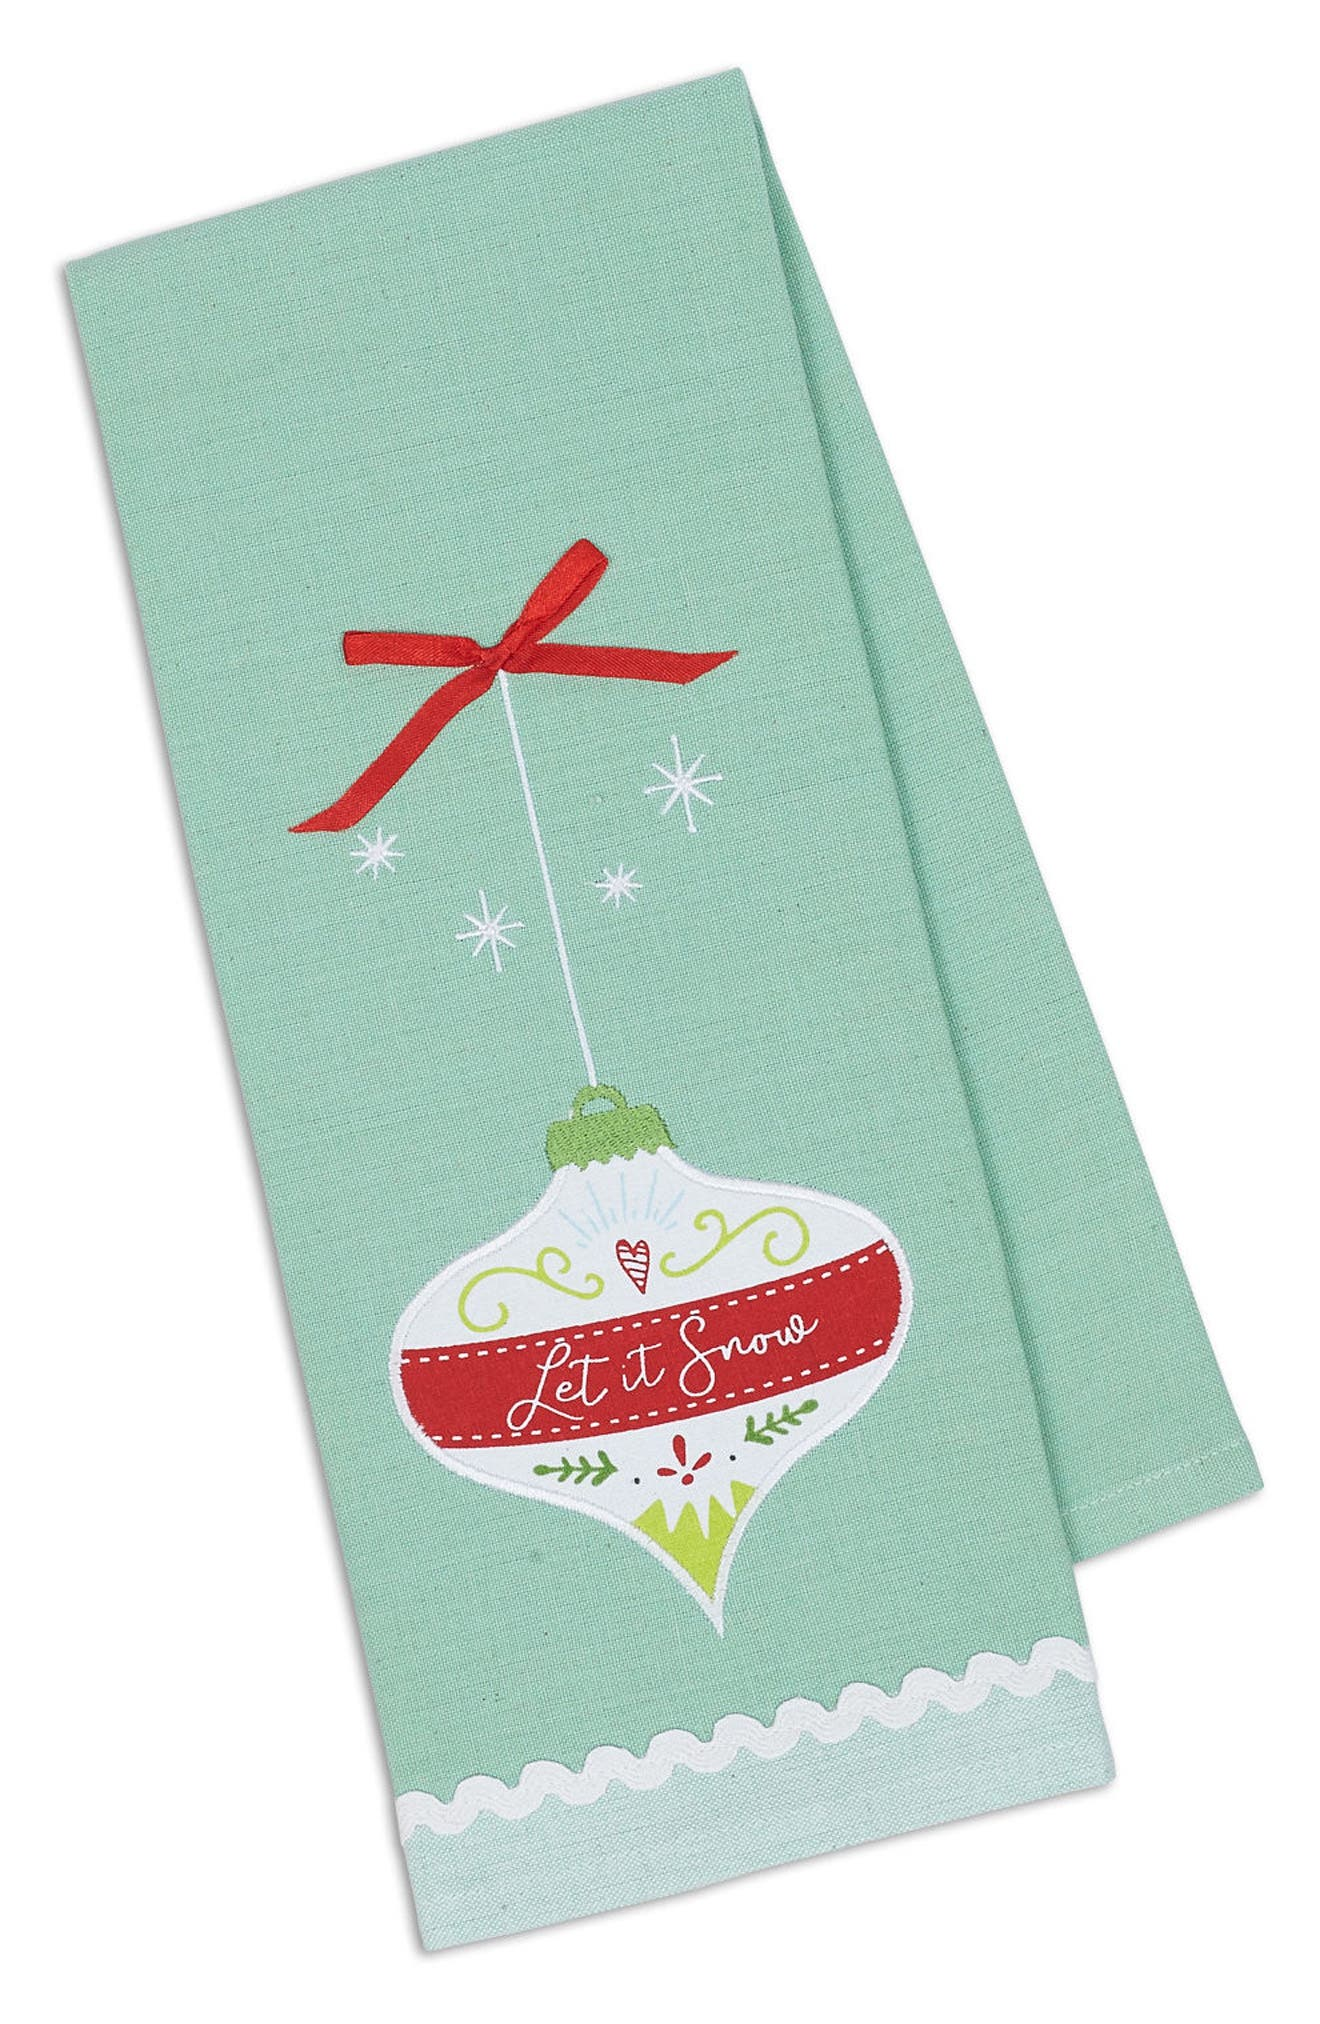 Let It Snow Embroidered Dish Towel,                         Main,                         color, 300